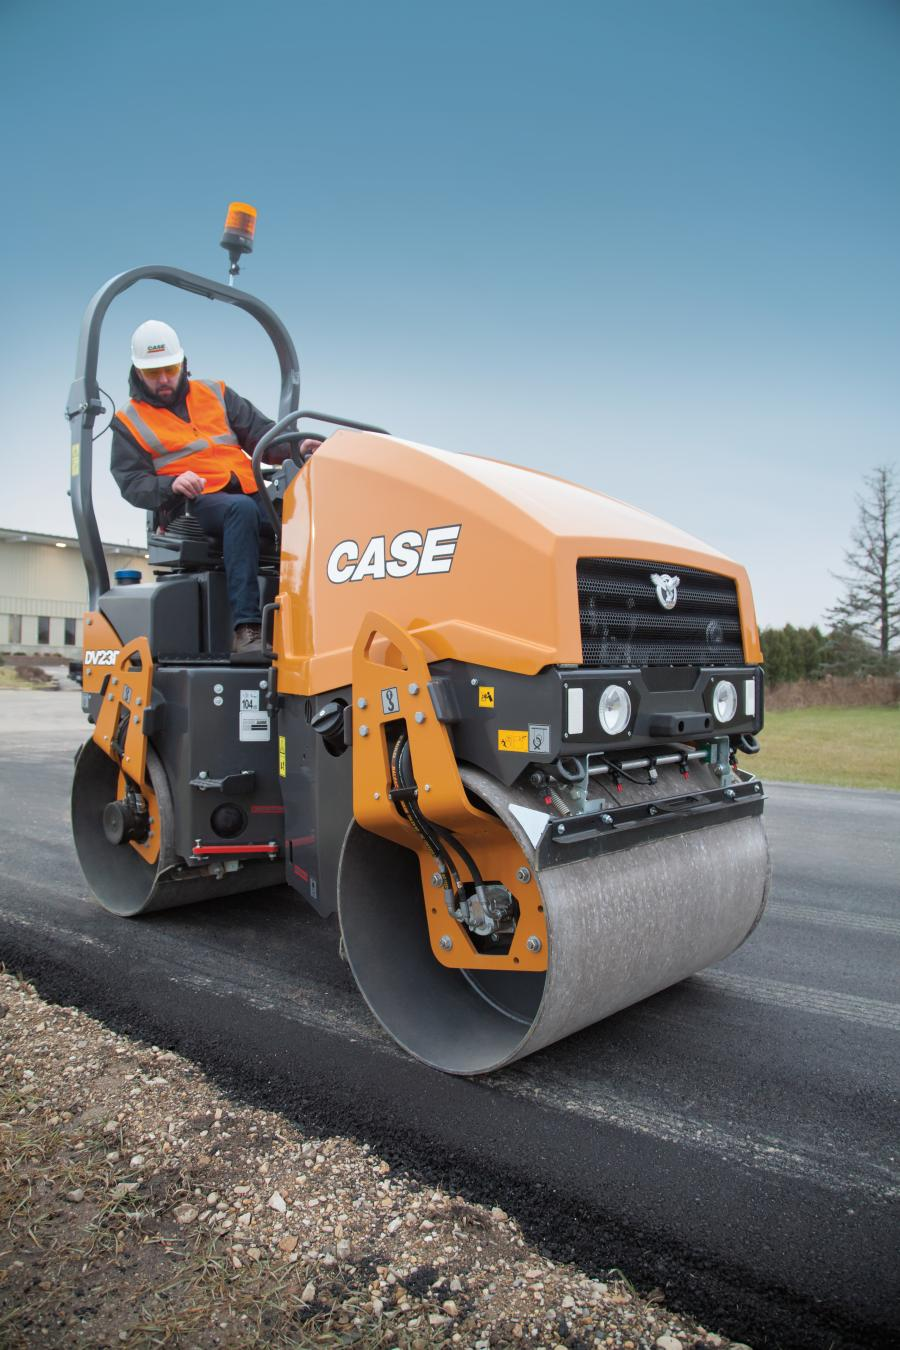 Designed with a high curb clearance, no overhangs and a narrow drum width of 37 in. (94 cm), these compact DV Series rollers are ideal for walkways, residential driveways, bike paths, tennis courts, small parking lots and other small- to mid-size compaction applications.